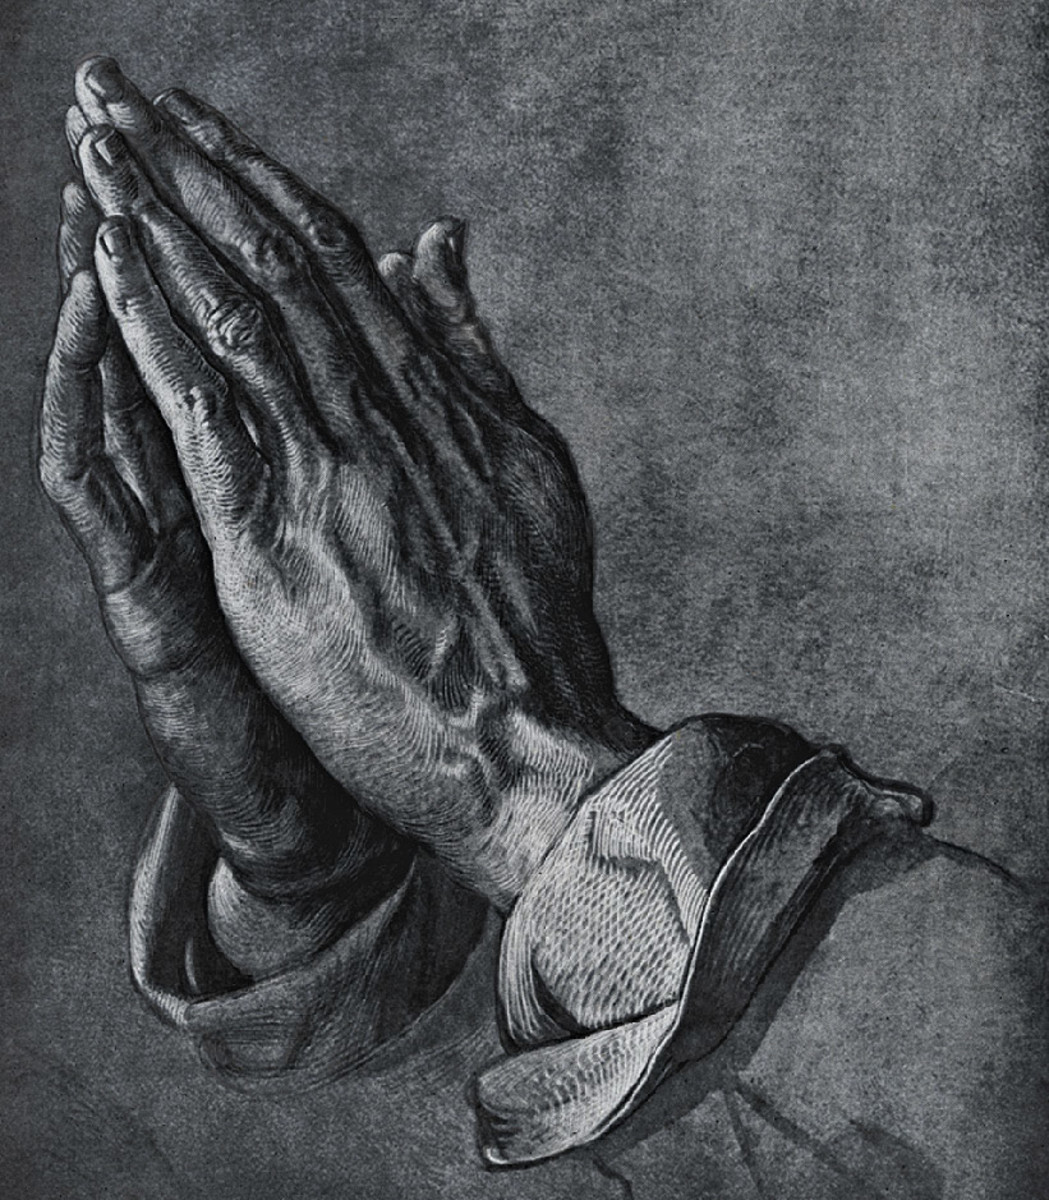 Durer's famous engraving of the Praying Hands.